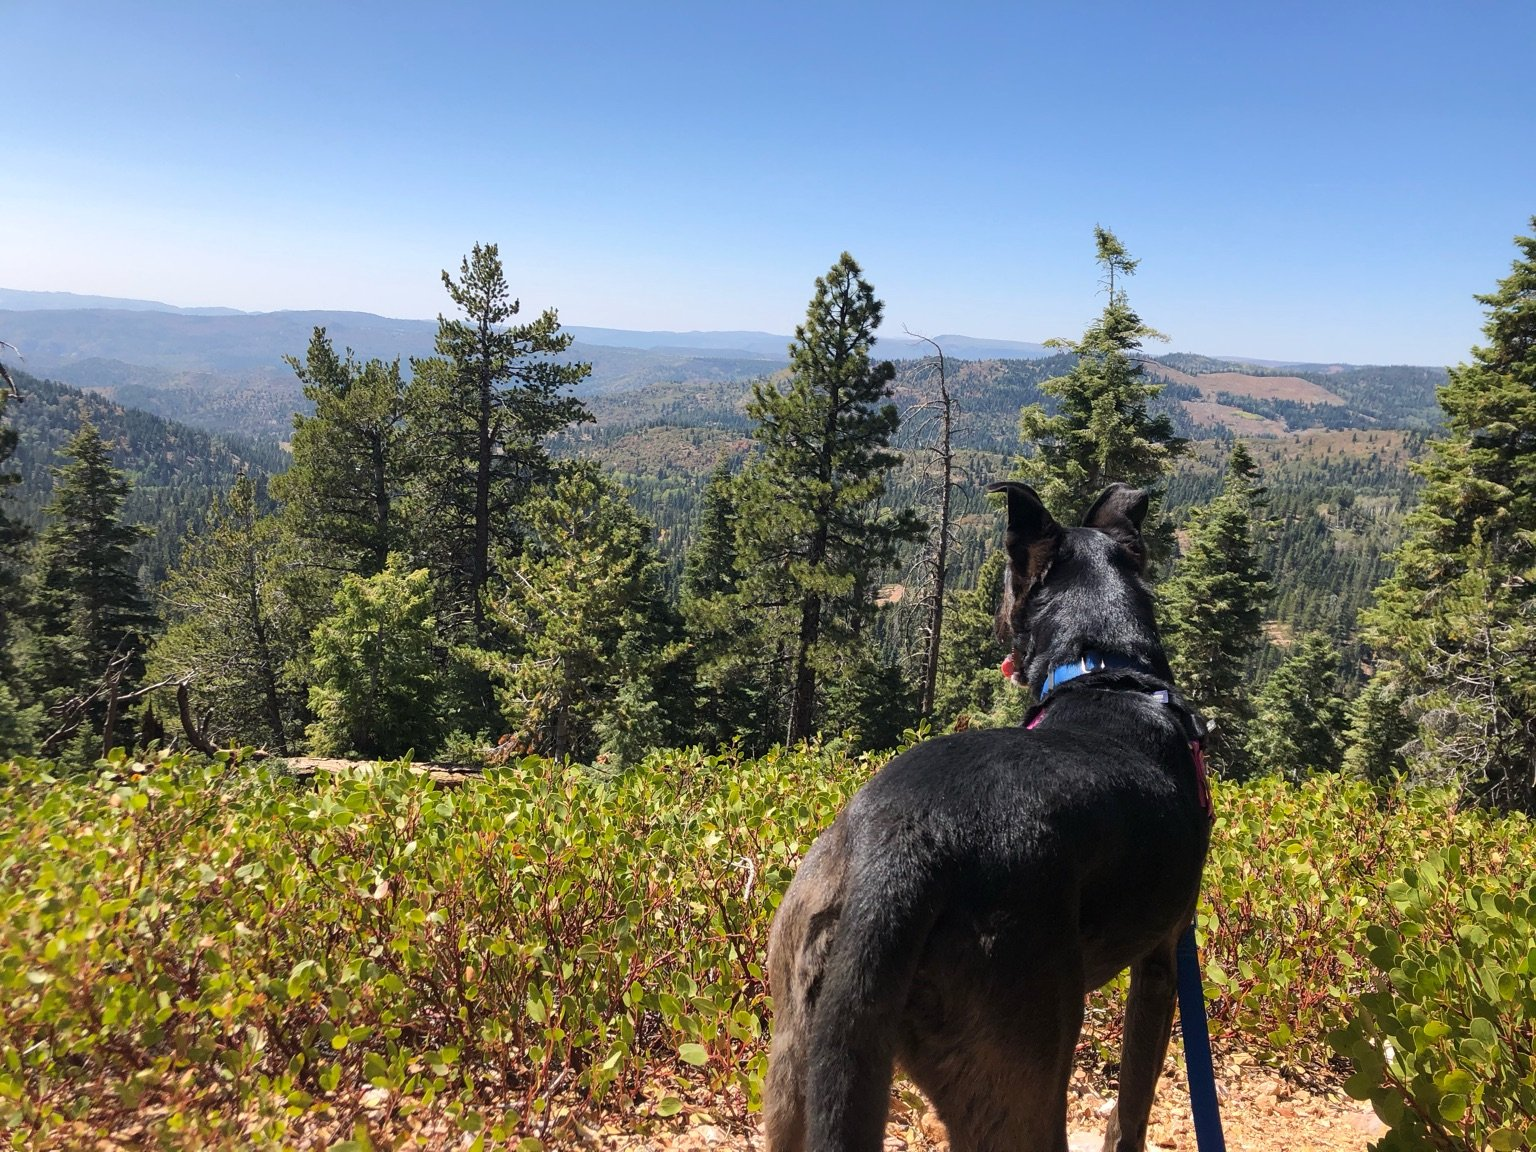 Black dog looking out over forest